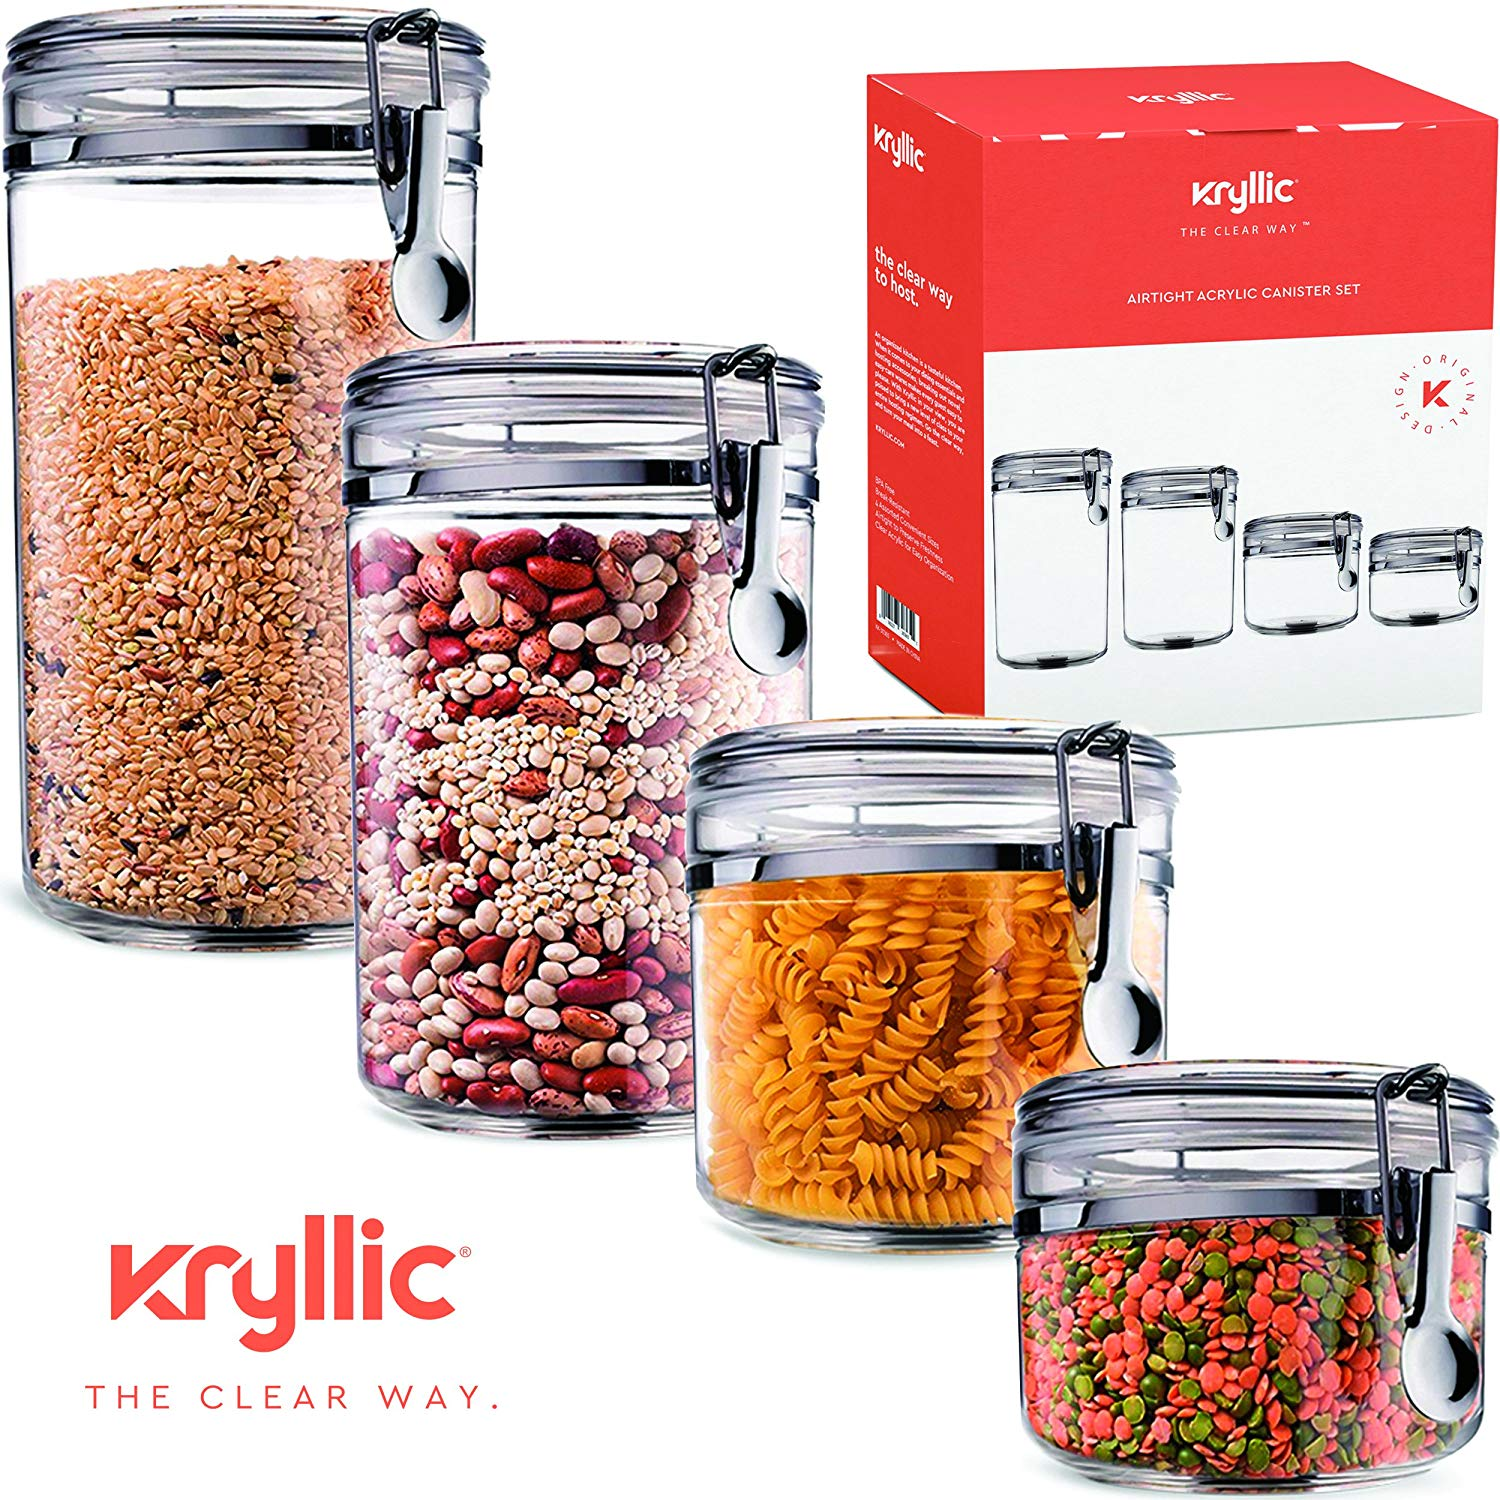 Superieur Food Storage Containers Canister Set   Cereal Container Air Tight Canisters  With Lids For The Dry